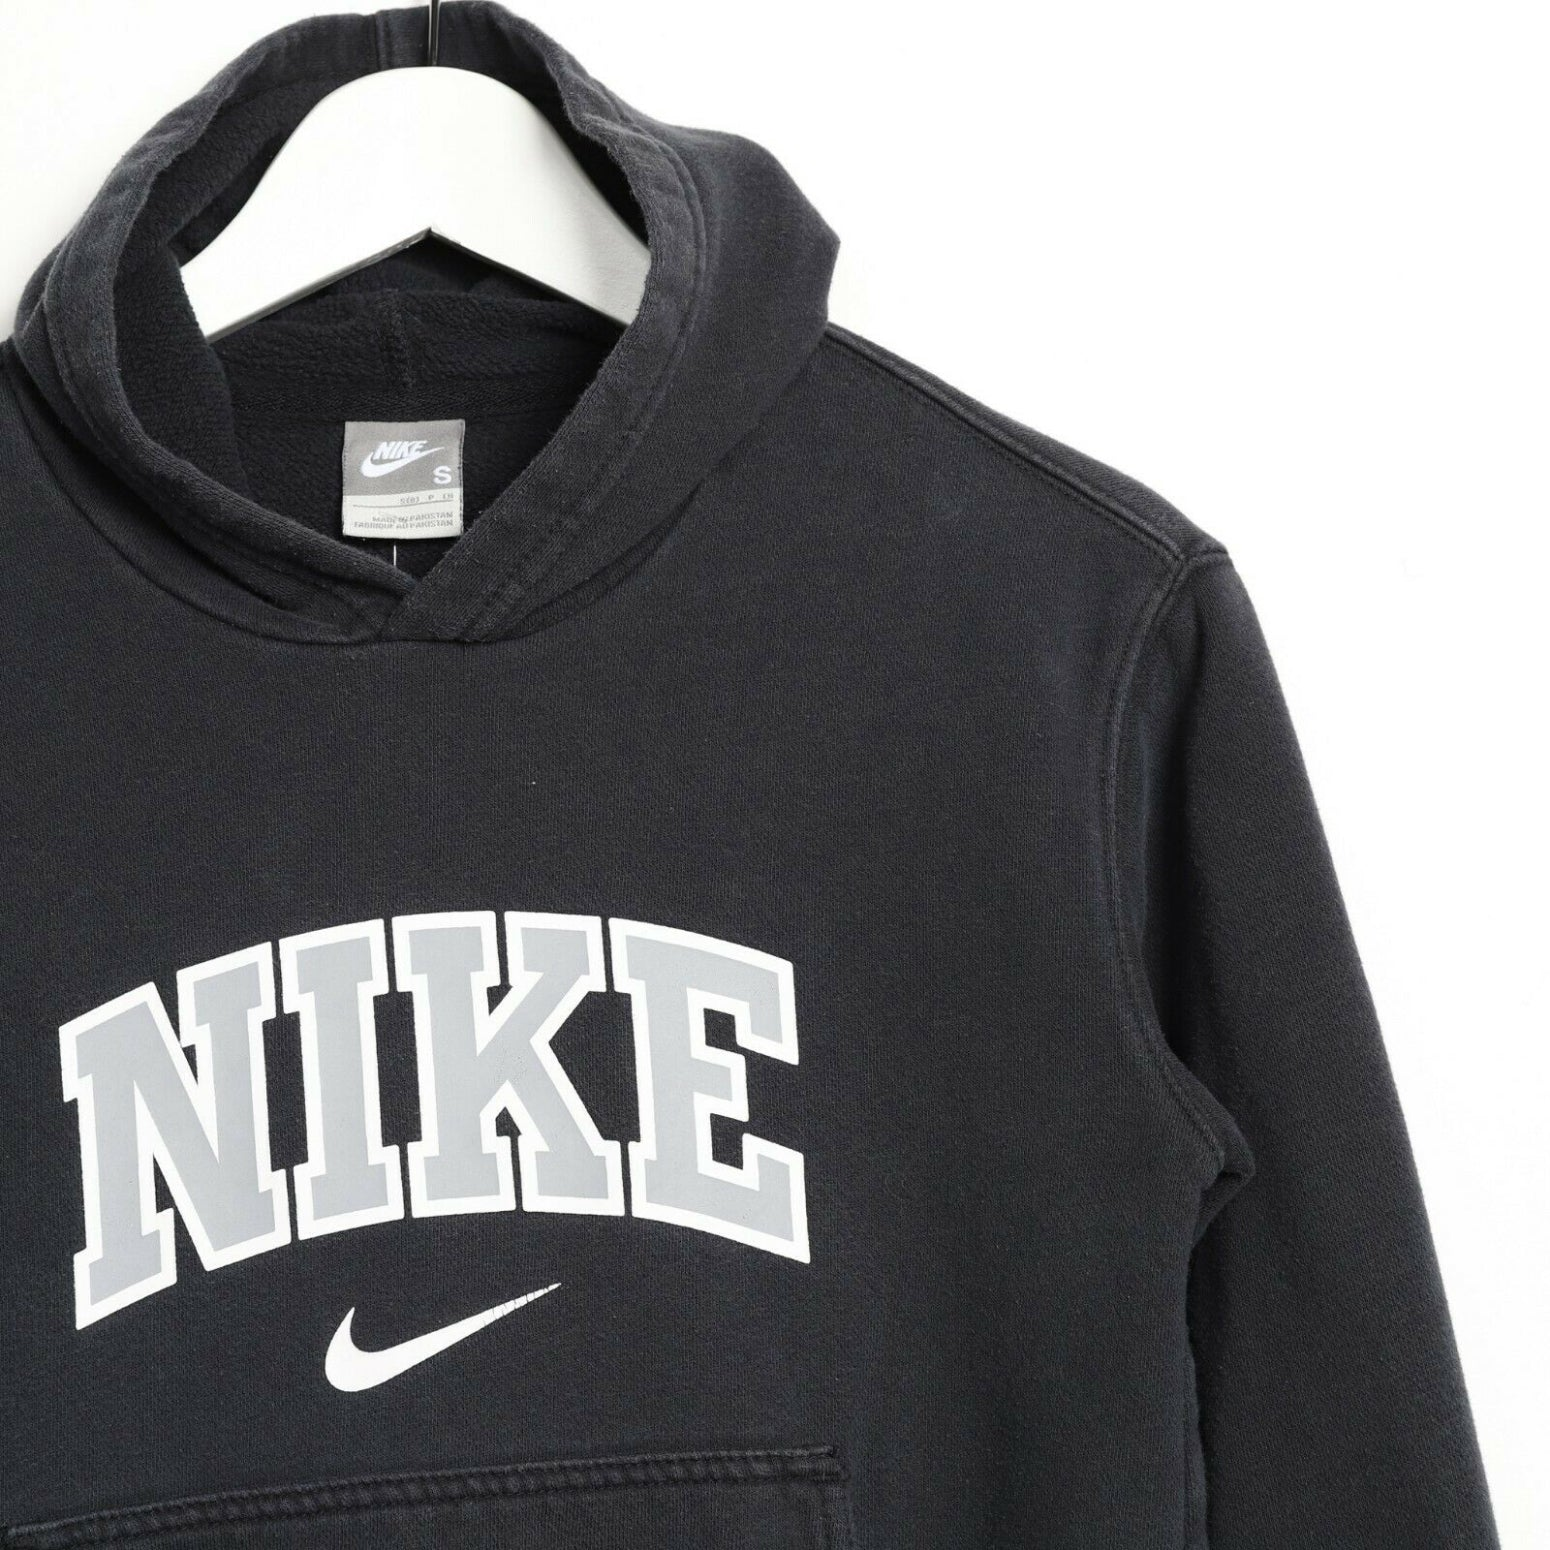 Vintage Women's NIKE Big Logo 3/4 Sleeve Hoodie Sweatshirt Black XS